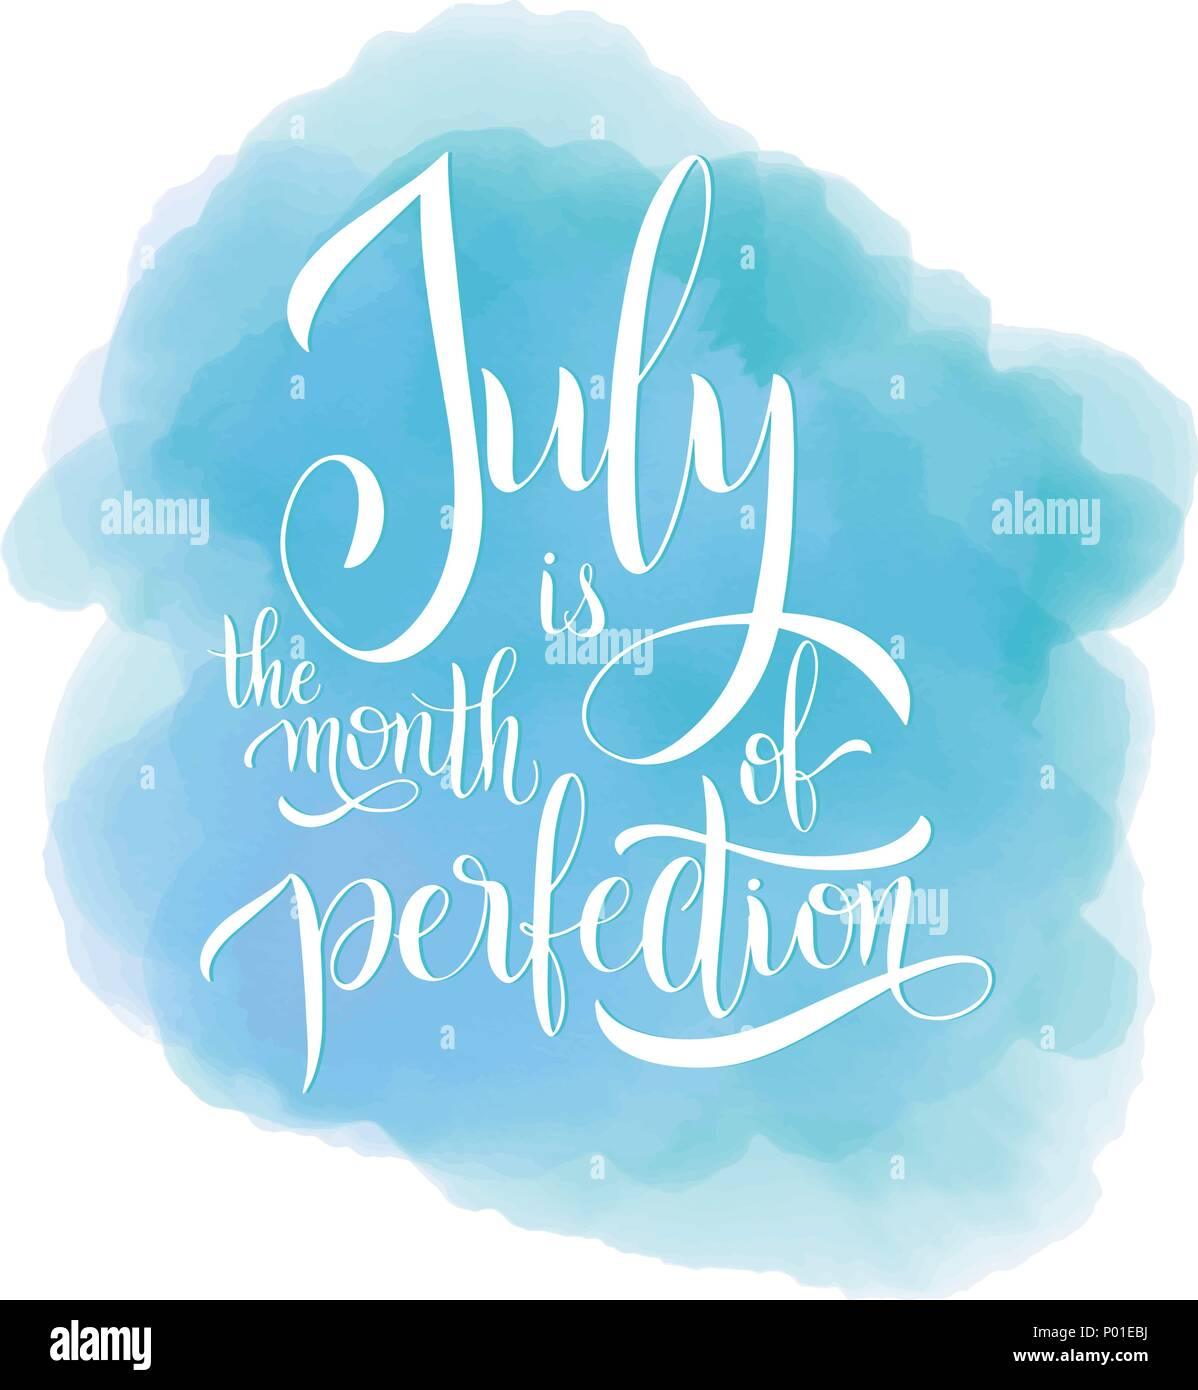 Delightful July Is The Month Of Perfection. Hello July Lettering. Elements For  Invitations, Posters, Greeting Cards. Seasons Greetings